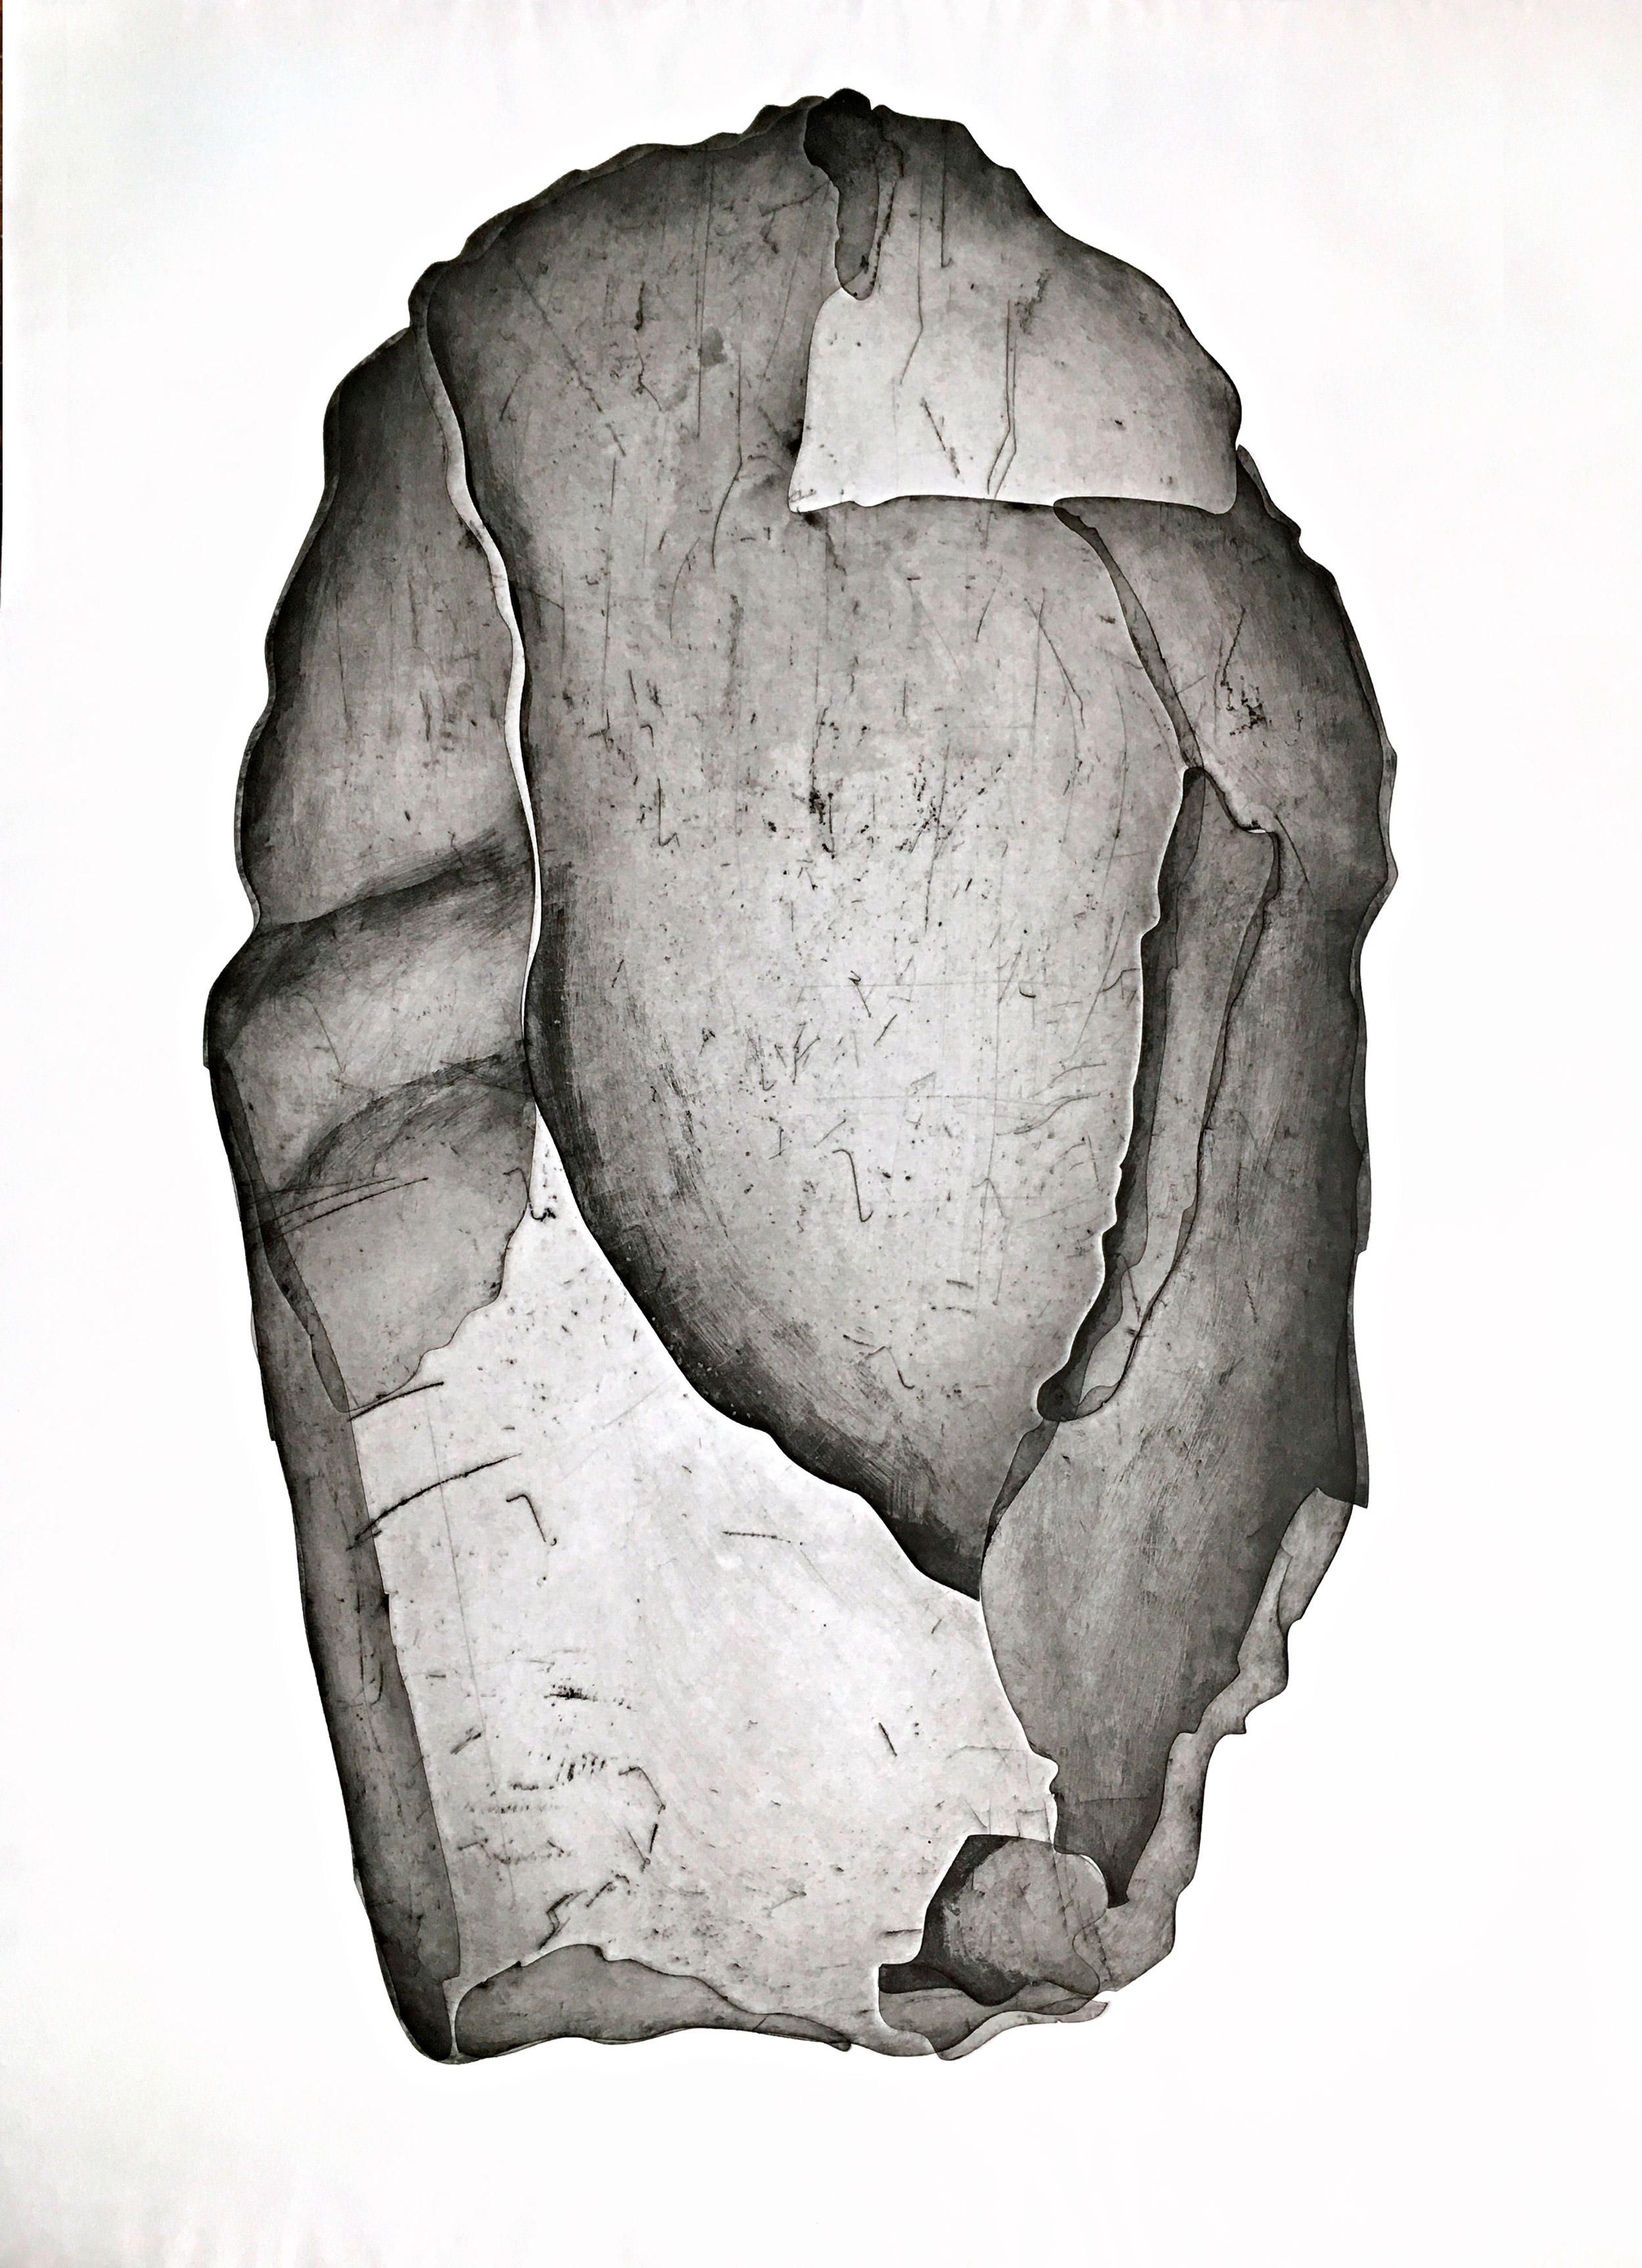 Stone Axe Head, monotype test, 2016, size: 135 x 95cm.  This is one of the first large monotype prints that I made at Basil Hall print studio in Braidwood NSW. You can see all the different plates (shards) that make up the whole stone tool. This image is a direct study of the stone tool. The paper is embossed at the edge of every new plate, you can see this very slightly in this image.